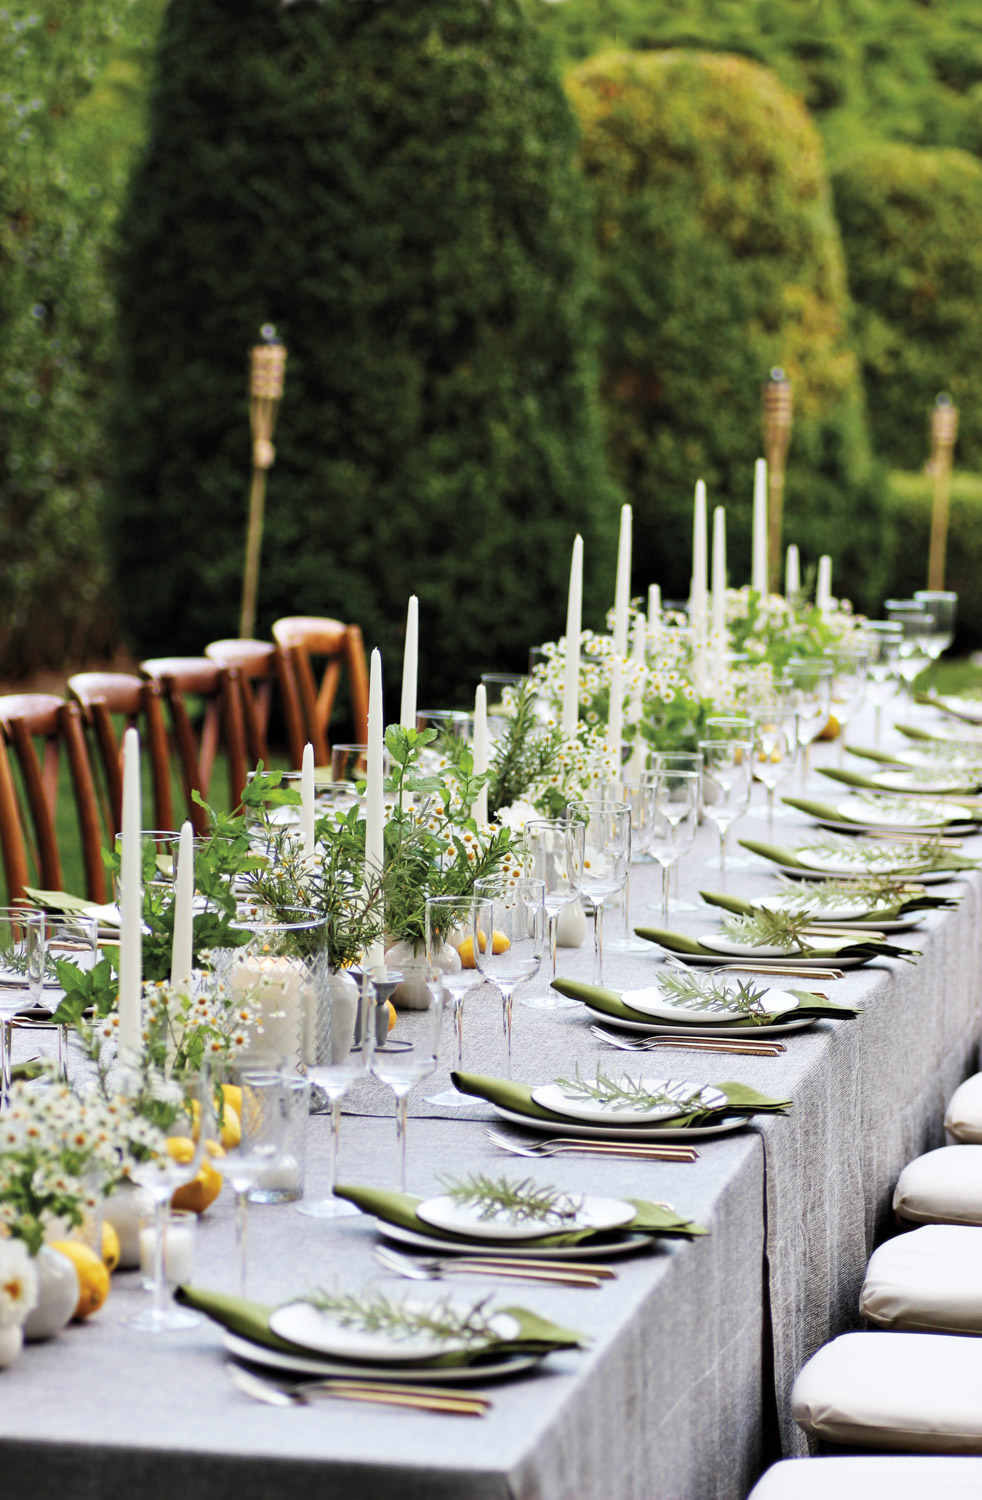 Quick Floral-Styling Tips For Any Tablescape {Quick Floral-Styling Tips For Any Tablescape} – English